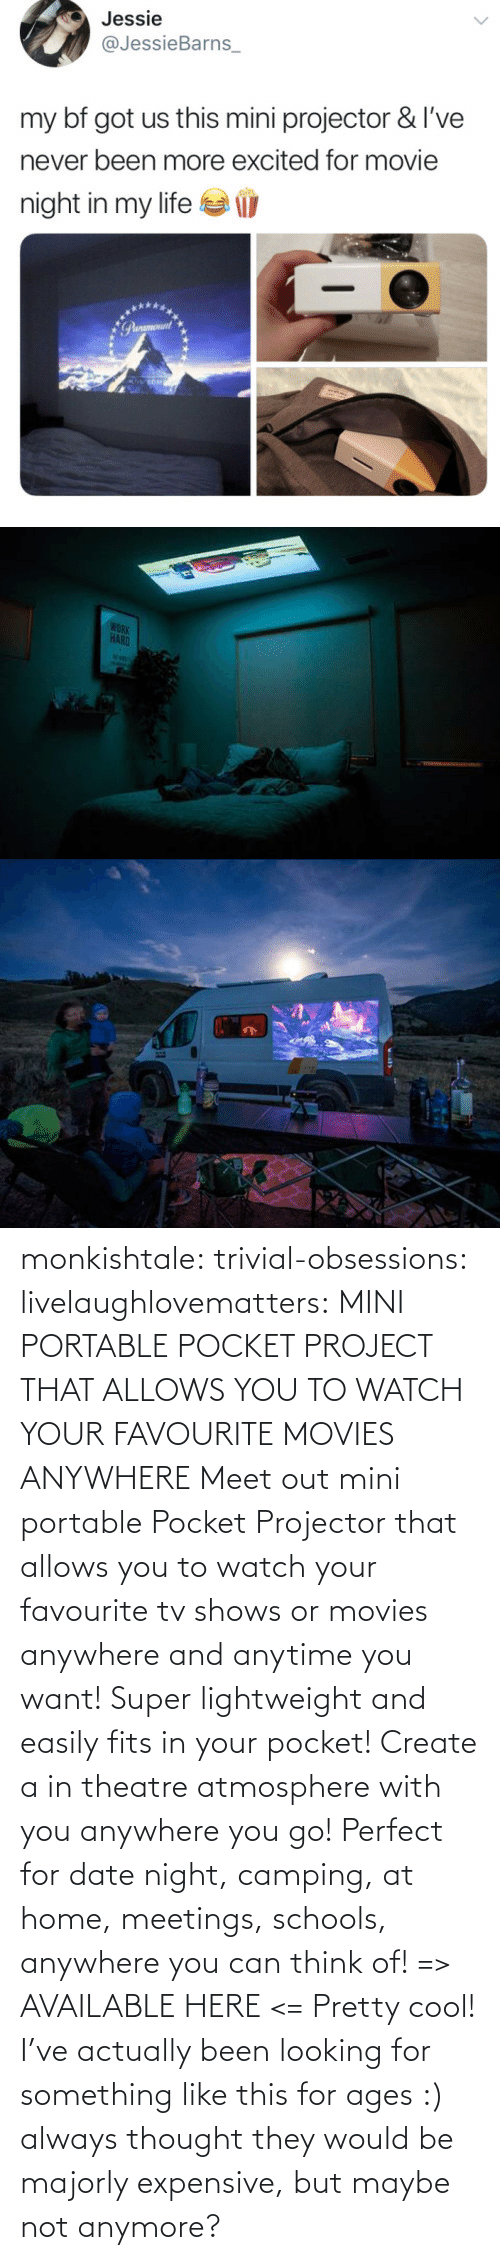 want: monkishtale: trivial-obsessions:   livelaughlovematters:   MINI PORTABLE POCKET PROJECT THAT ALLOWS YOU TO WATCH YOUR FAVOURITE MOVIES ANYWHERE Meet out mini portable Pocket Projector that allows you to watch your favourite tv shows or movies anywhere and anytime you want! Super lightweight and easily fits in your pocket! Create a in theatre atmosphere with you anywhere you go! Perfect for date night, camping, at home, meetings, schools, anywhere you can think of! => AVAILABLE HERE <=    Pretty cool!    I've actually been looking for something like this for ages :) always thought they would be majorly expensive, but maybe not anymore?